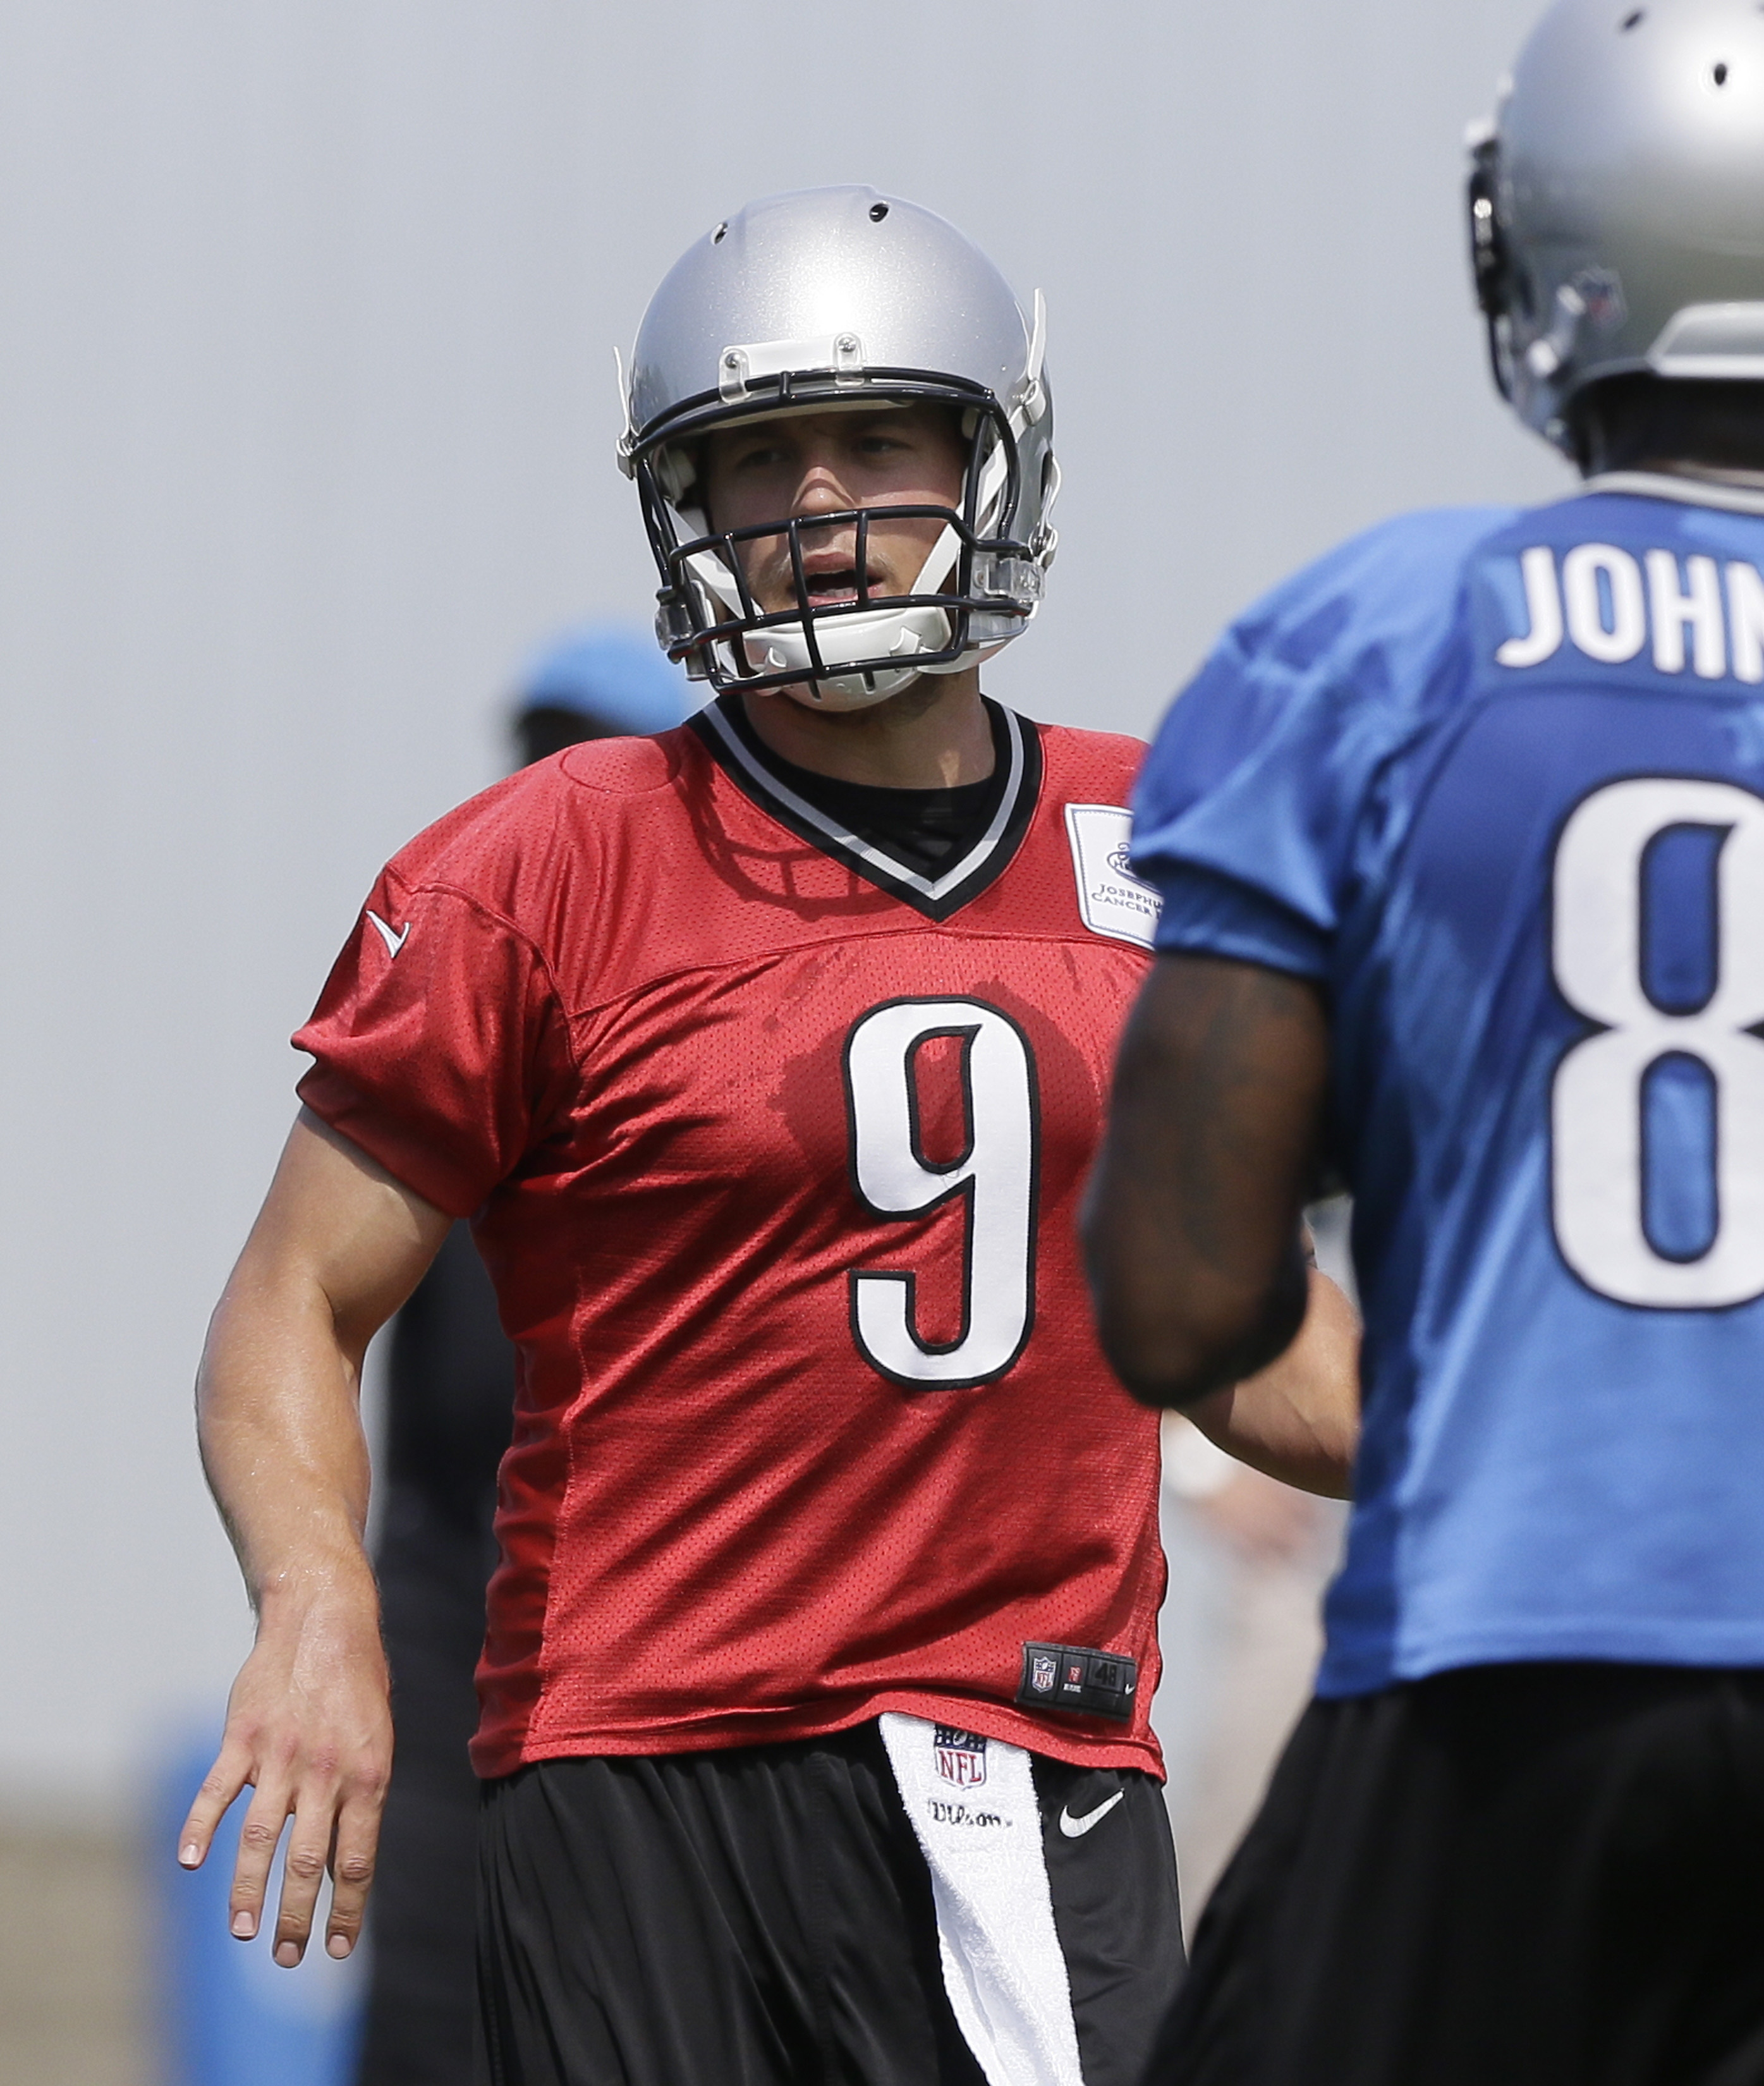 In this photo taken on June 16, 2015, Detroit Lions quarterback Matthew Stafford huddles during drills at NFL football minicamp, in Allen Park, Mich. The narrative surrounding Stafford's career might have changed significantly if the Detroit had held on t